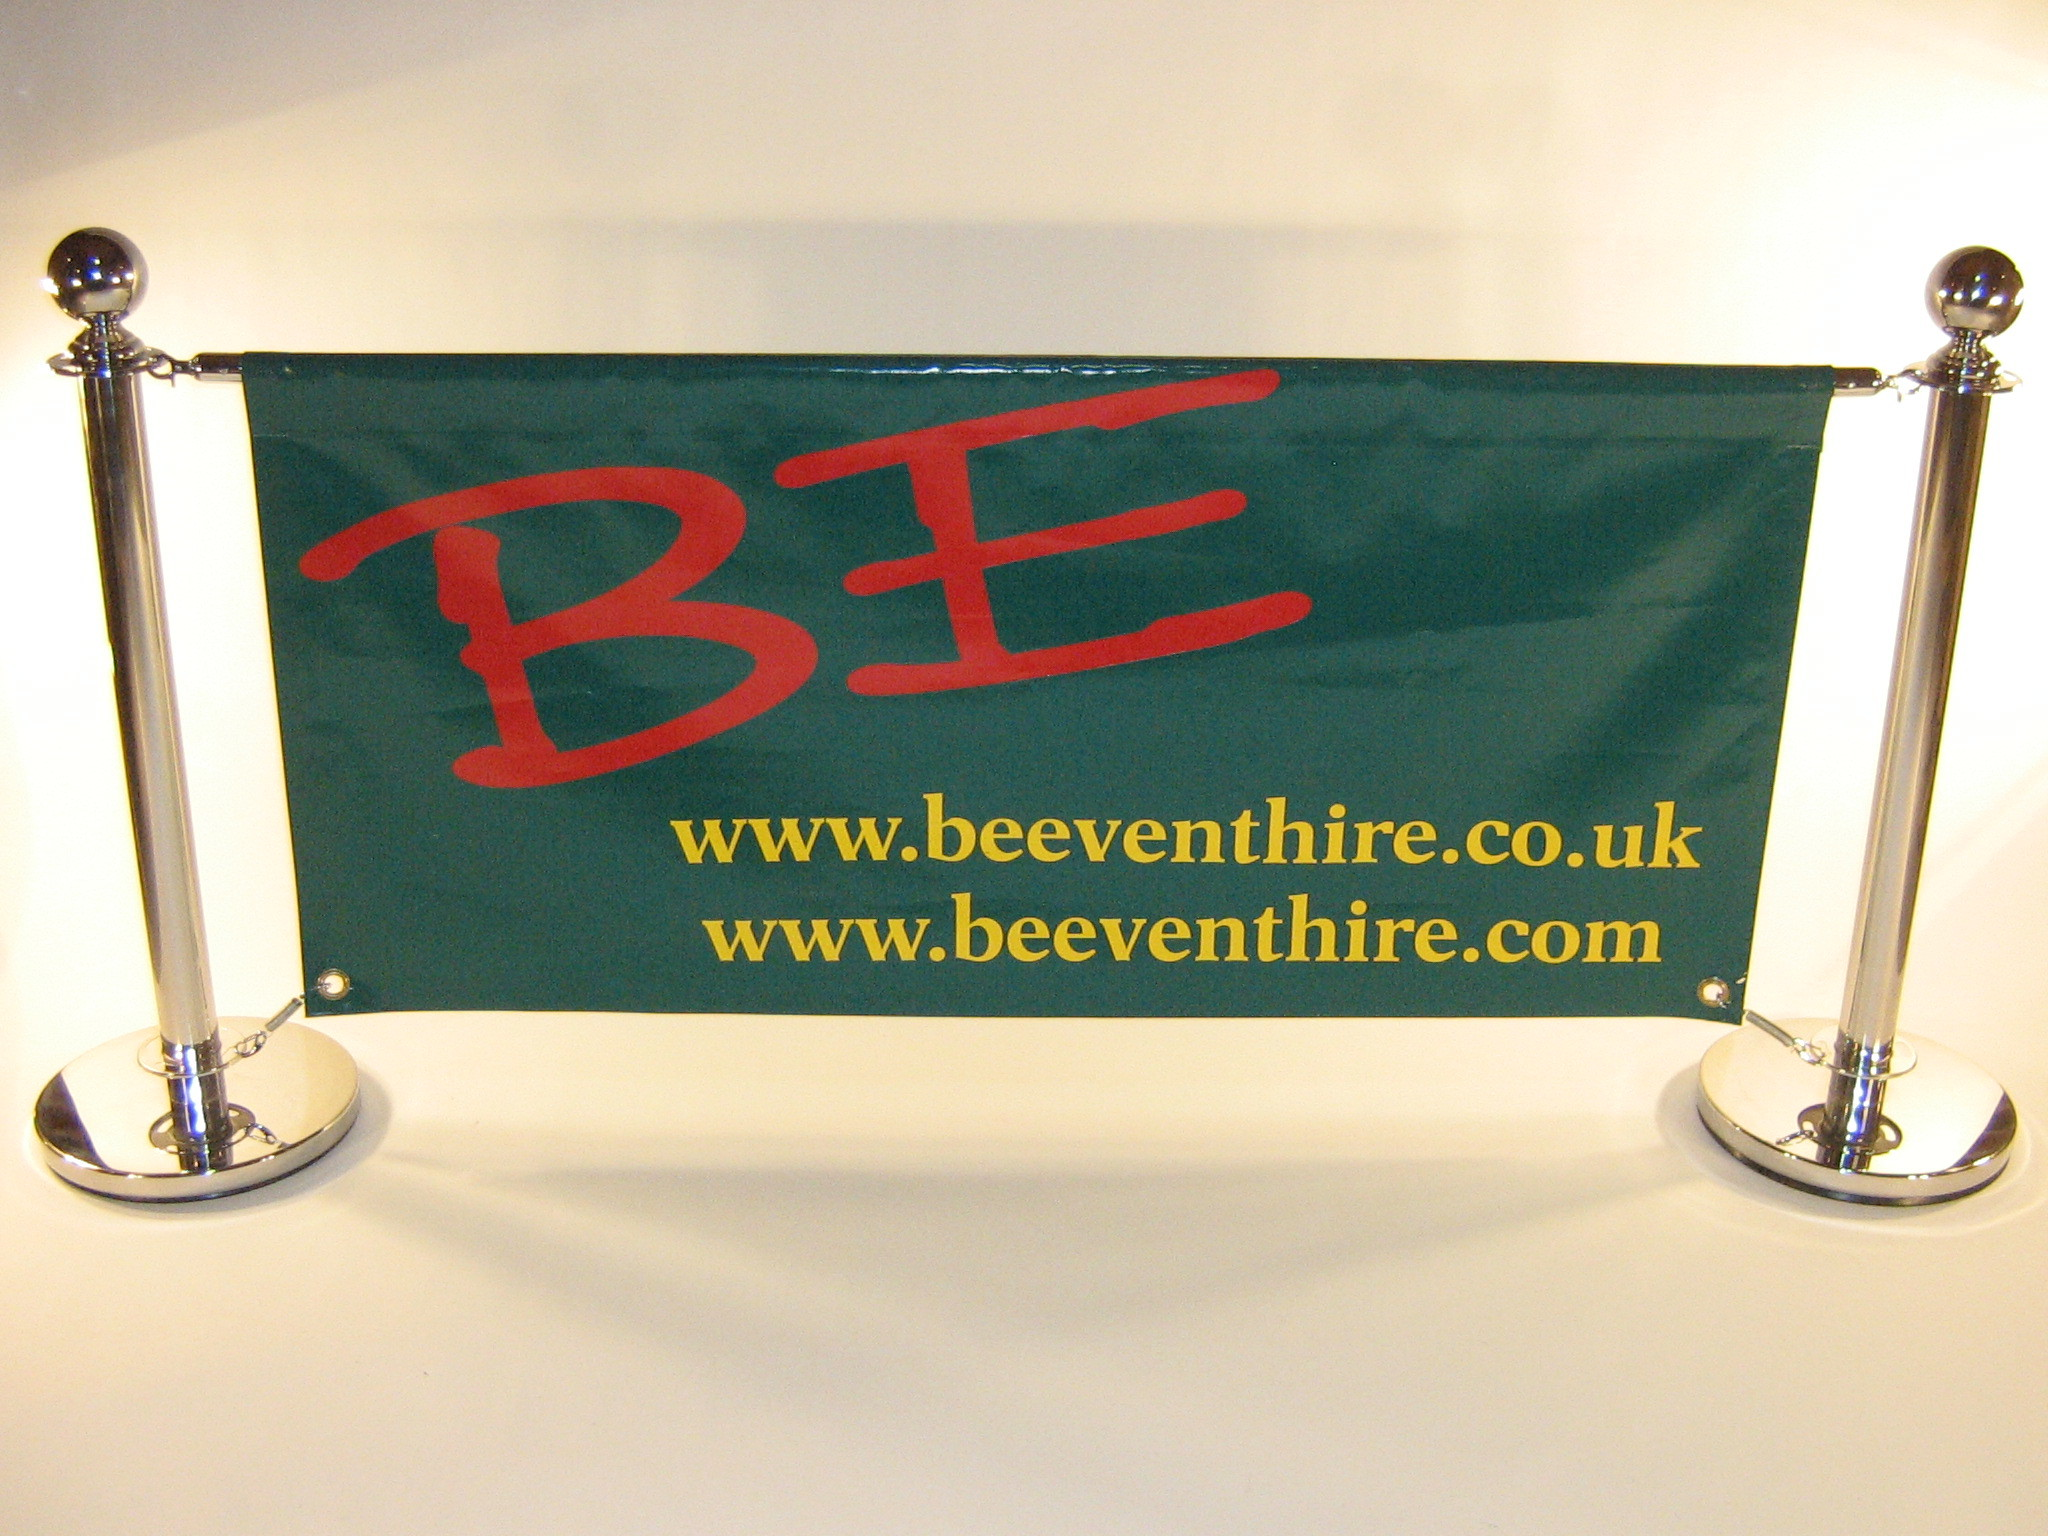 High quality stainless steel cafe barrier sets - BE Event Hire